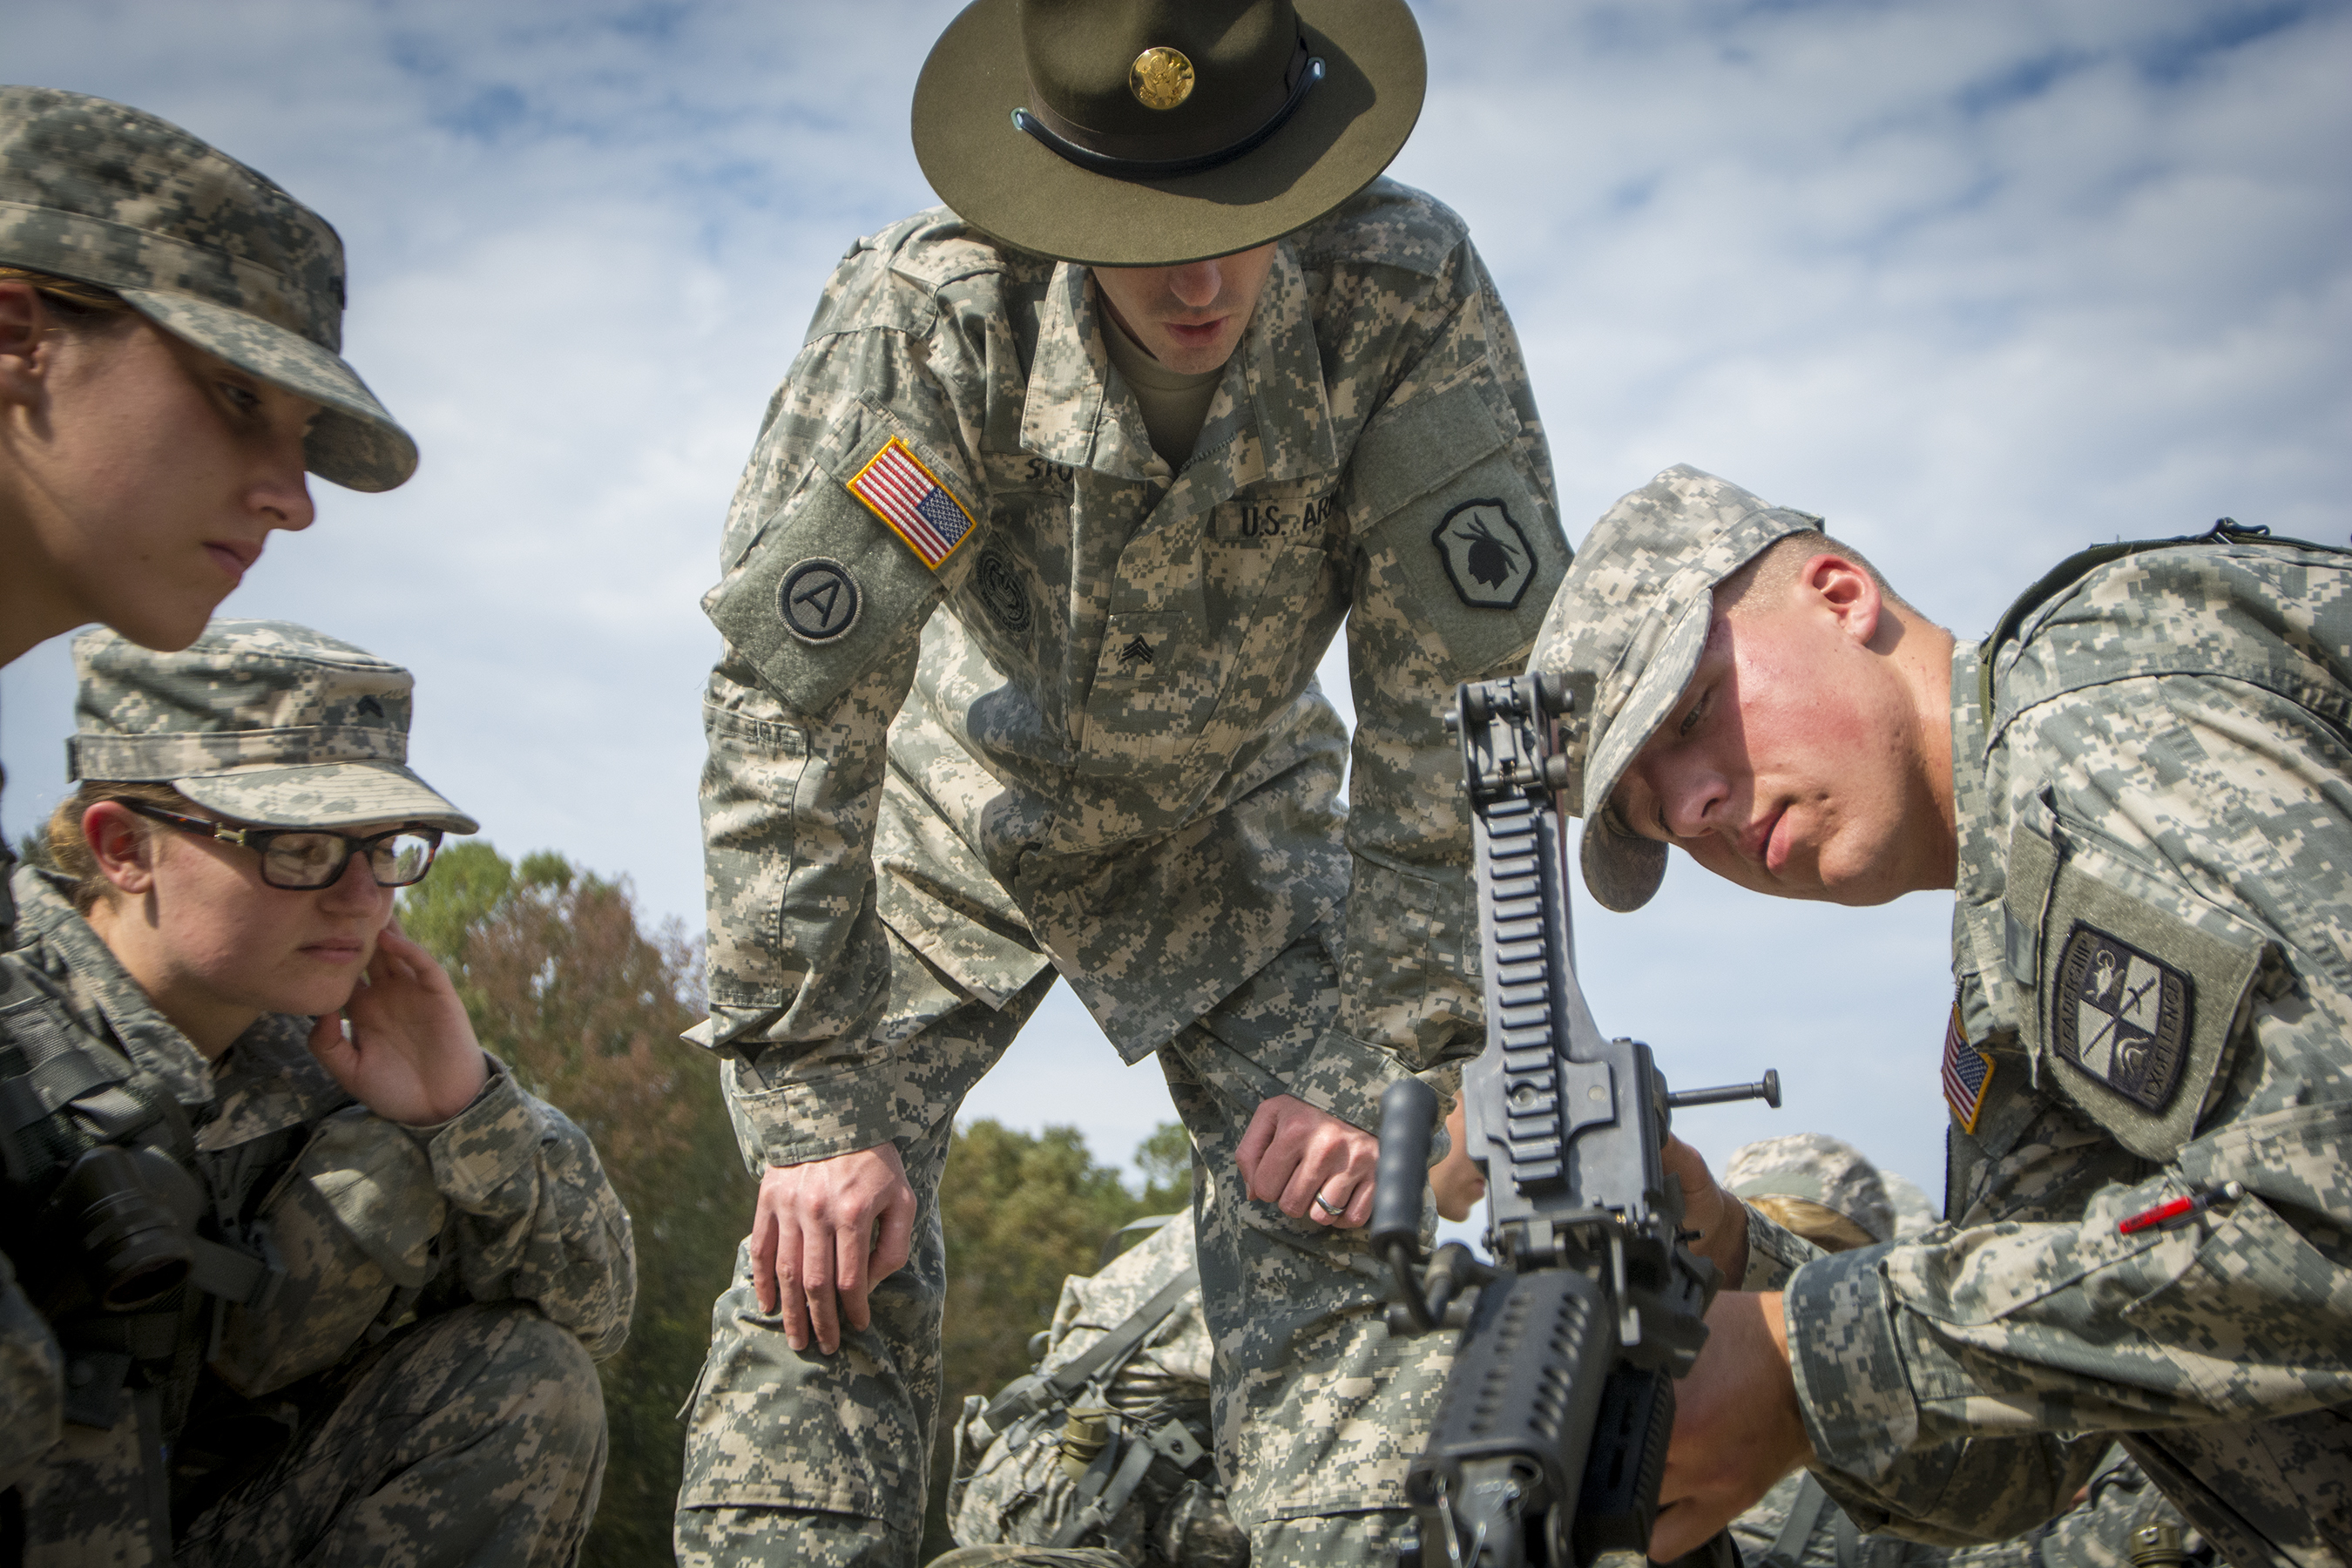 How to Become an Army Drill Sergeant